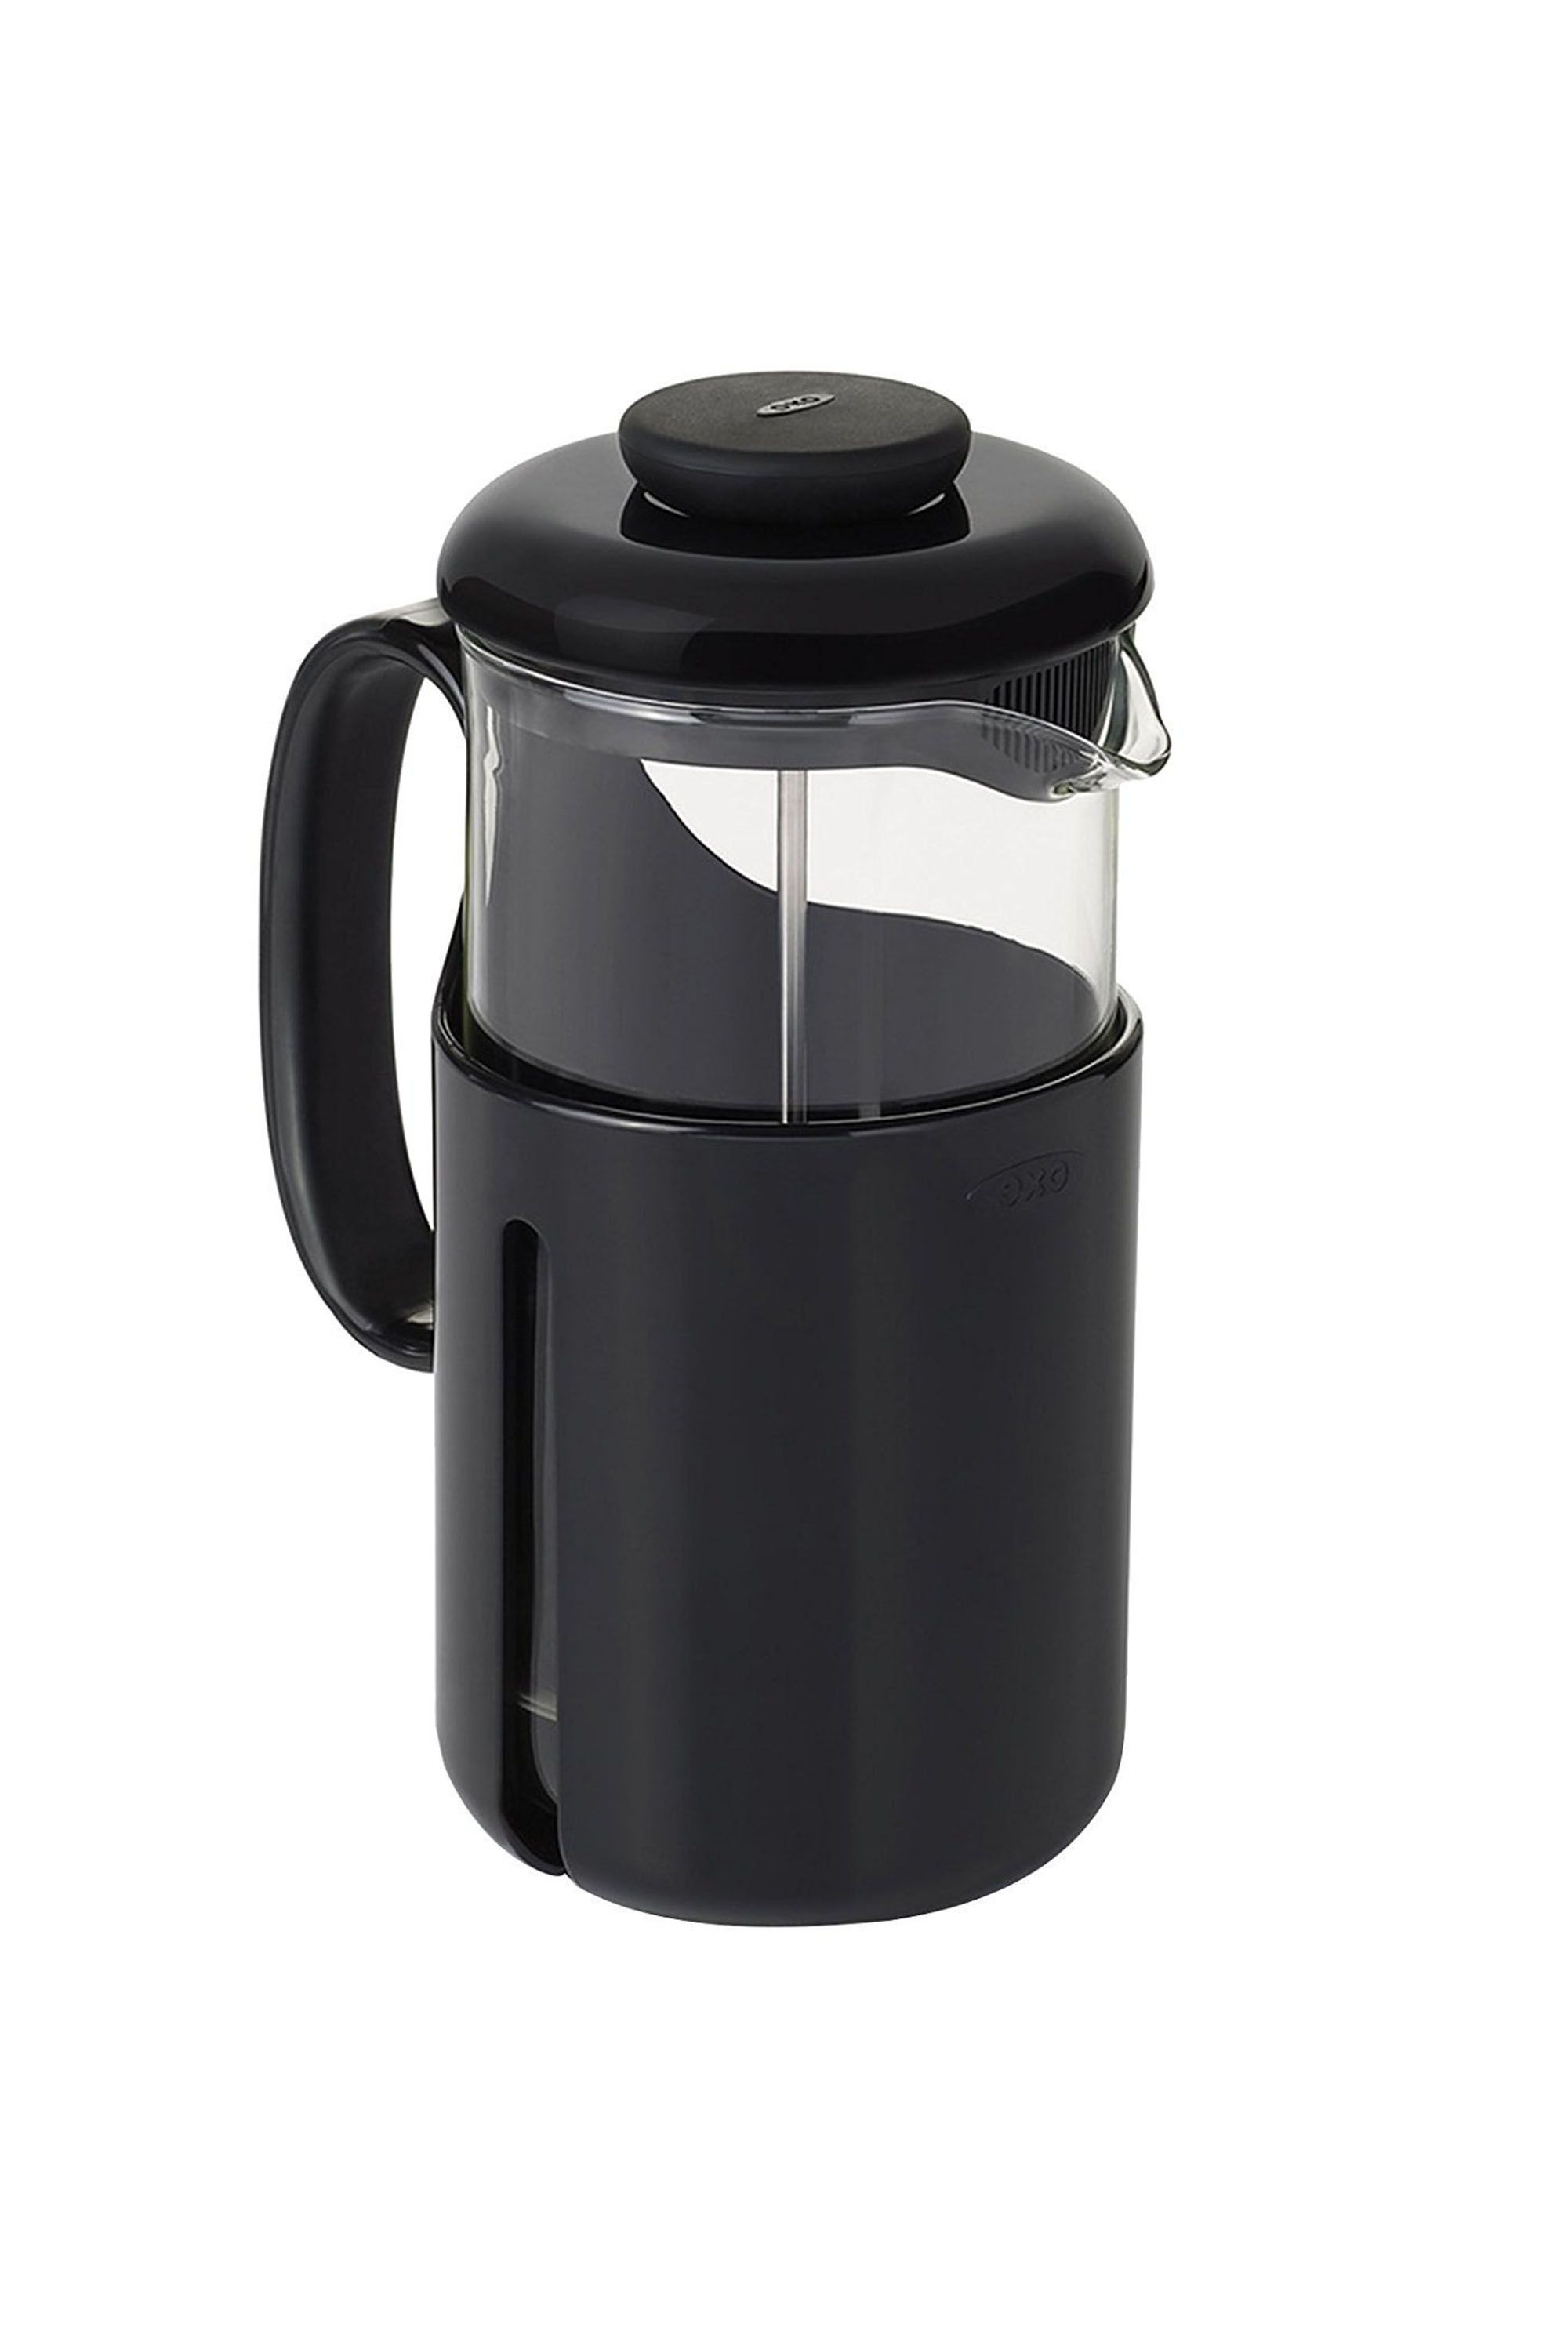 15 Best Camping Coffee Makers Top Portable Coffee Makers For Campsites